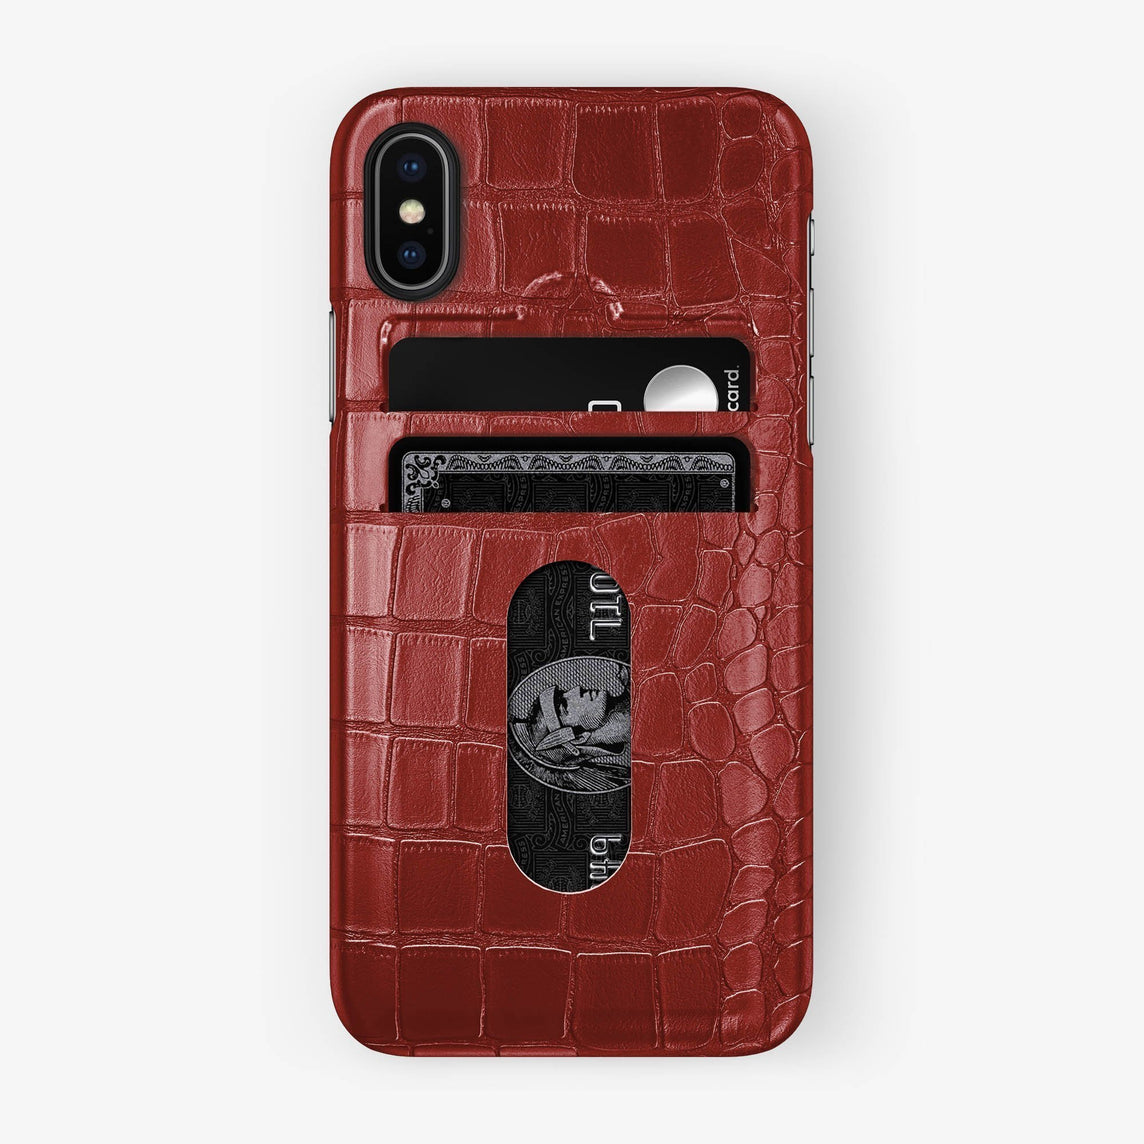 Alligator Card Holder Case iPhone Xs Max | Red - Black - Hadoro